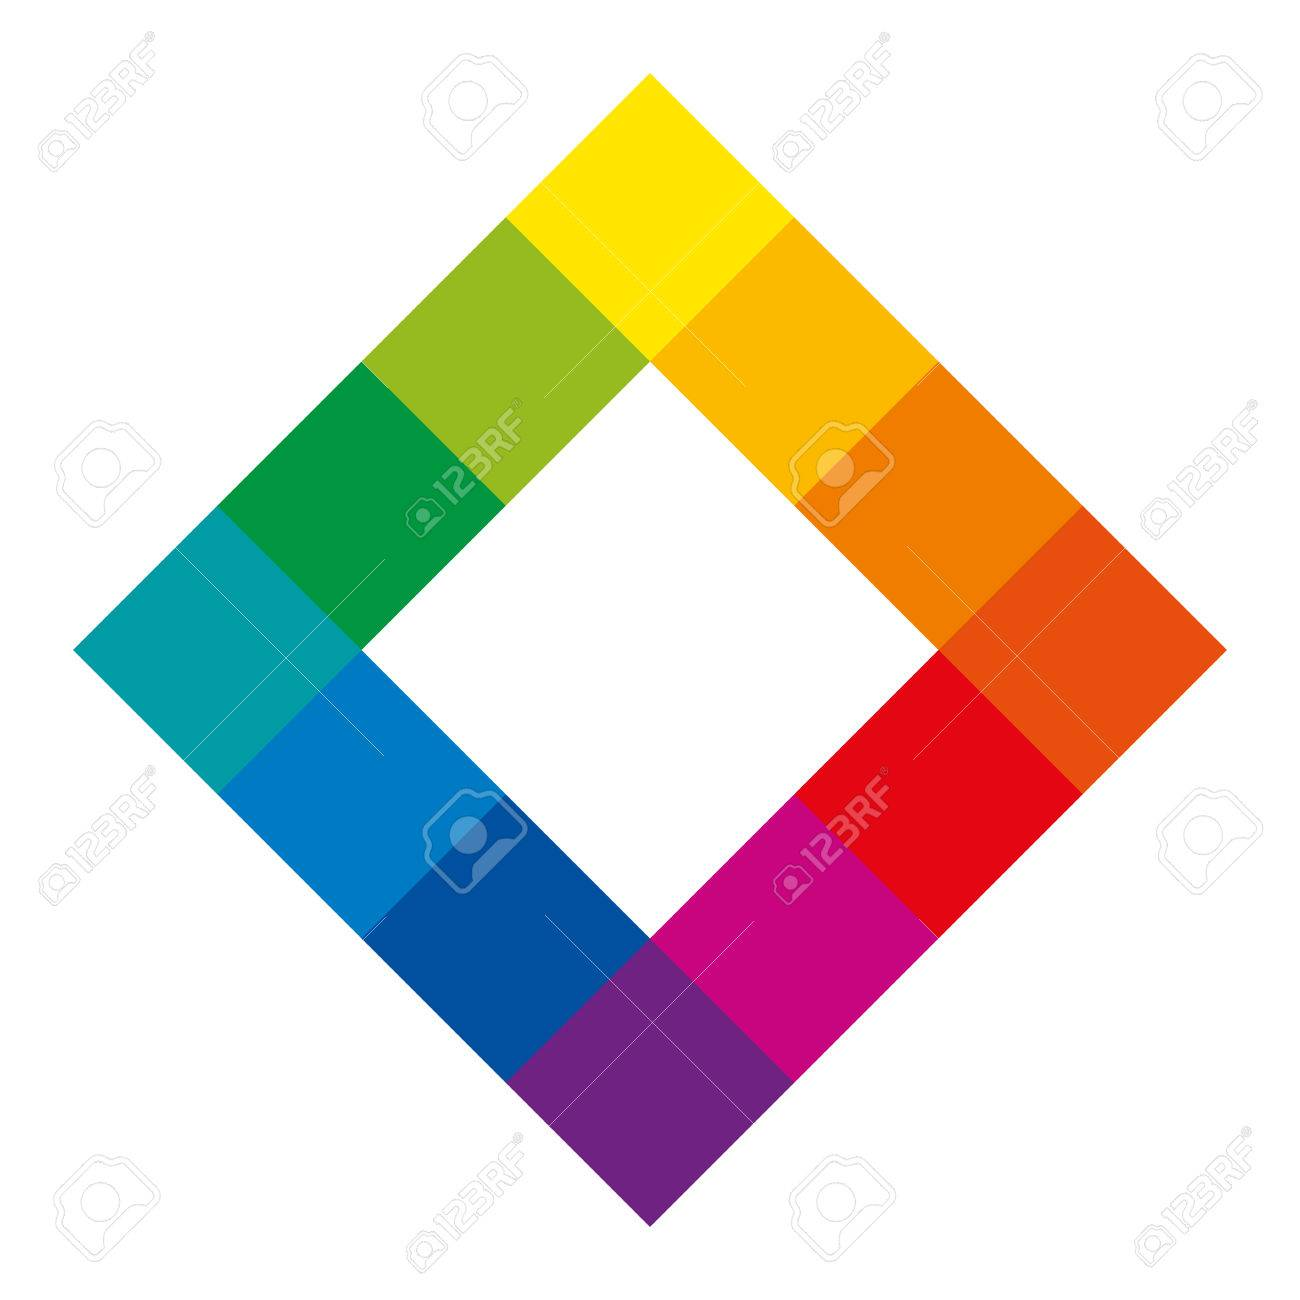 Twelve Unique Color Hues Of The Color Wheel In Square Shape Showing Royalty Free Cliparts Vectors And Stock Illustration Image 77783533